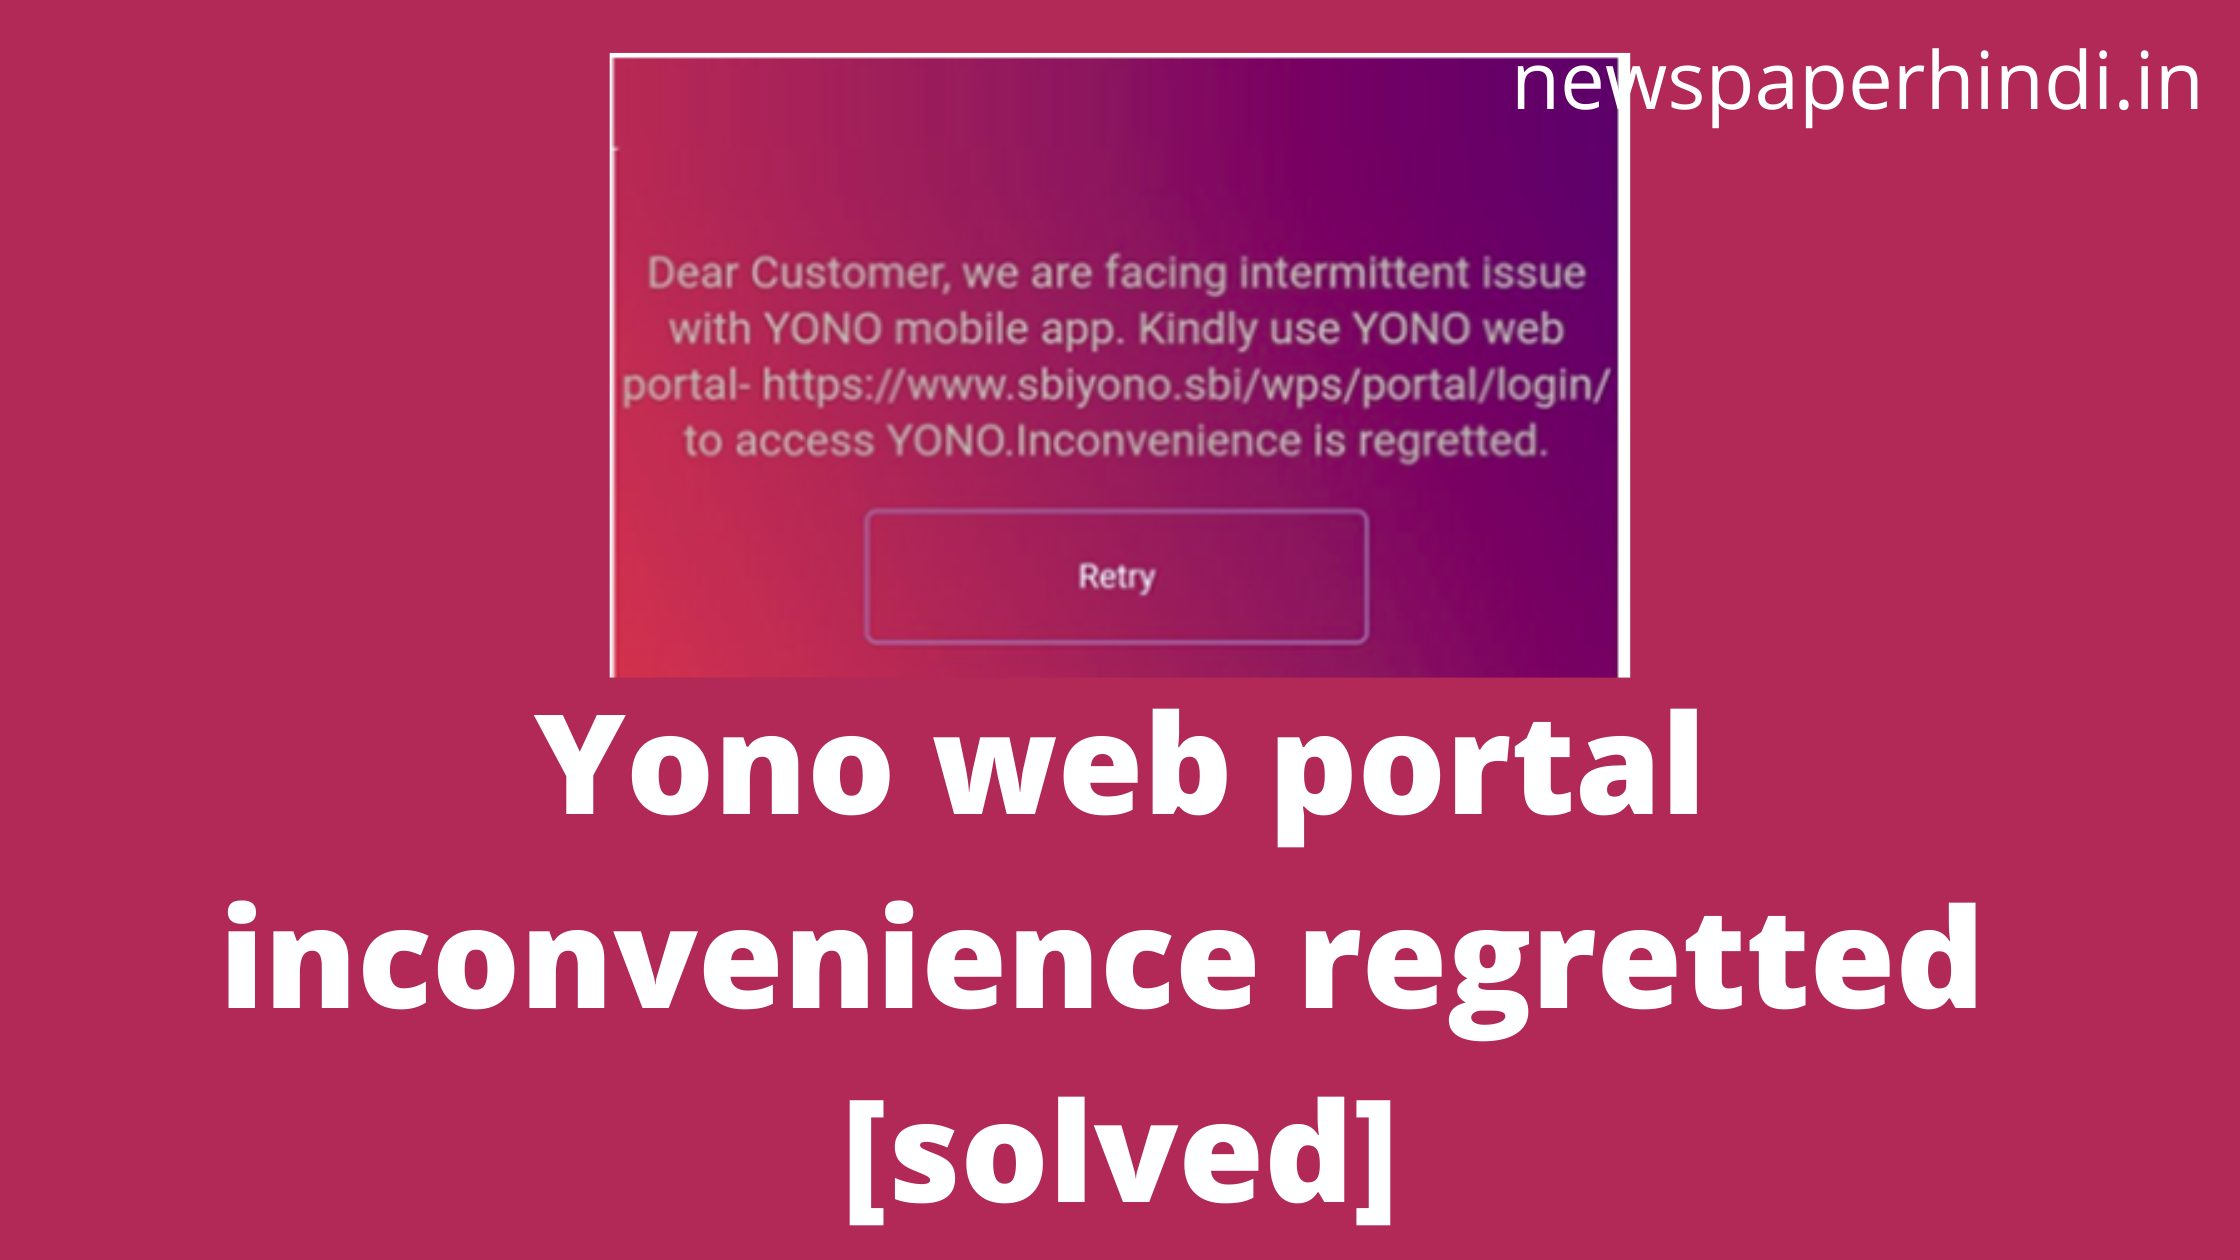 Yono web portal inconvenience regretted (solved)